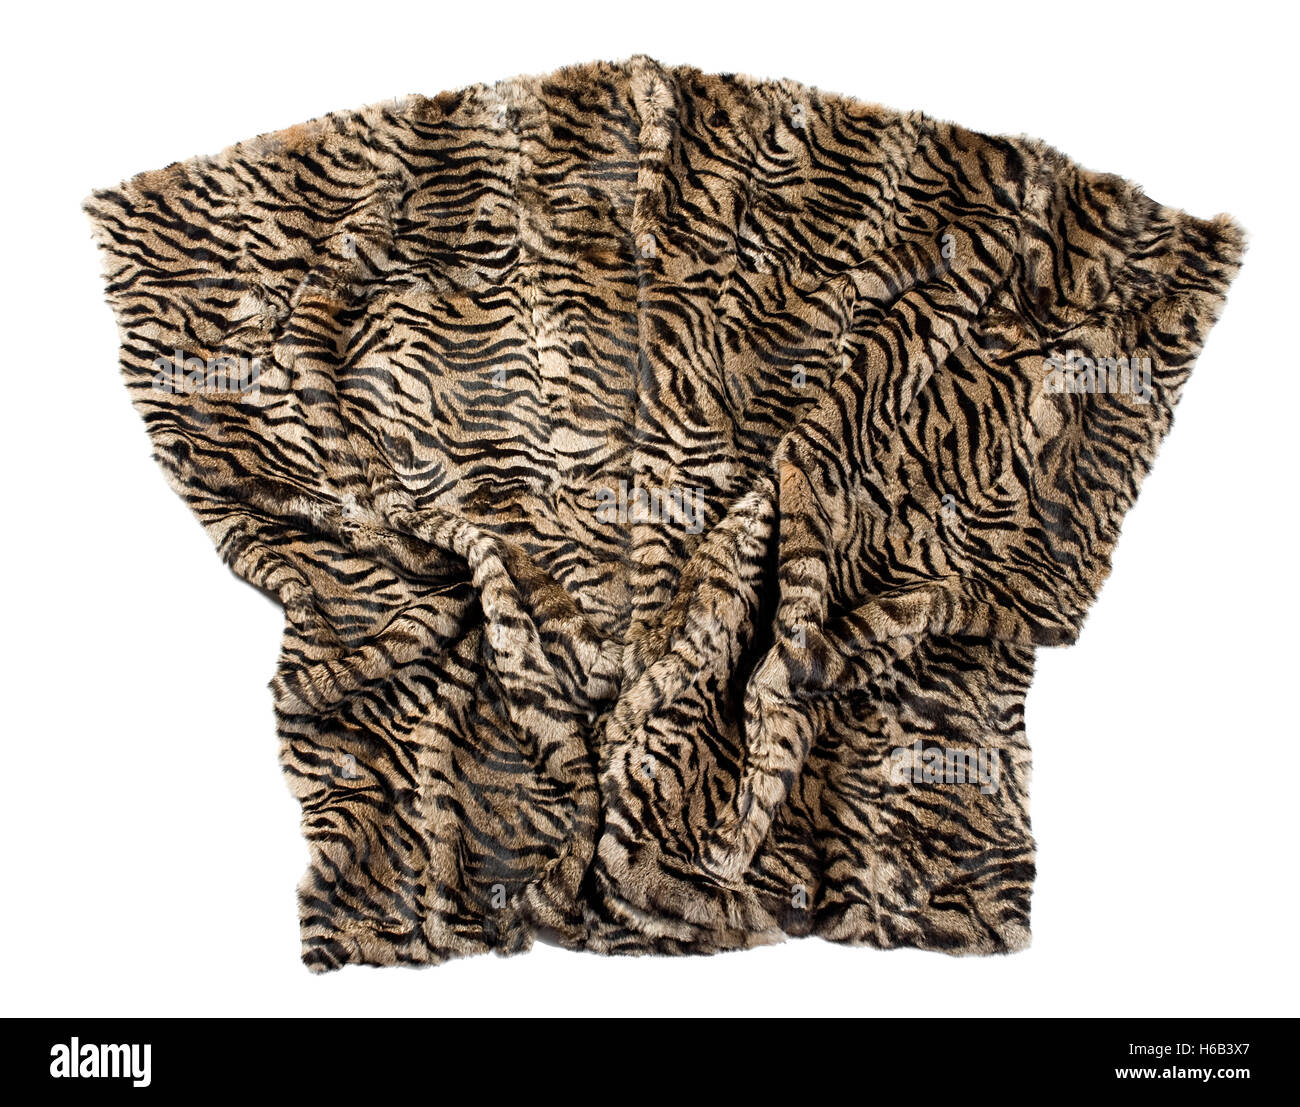 Leopard pattern blanket isolated on white artistically displayed with soft folds gathered at the bottom - Stock Image